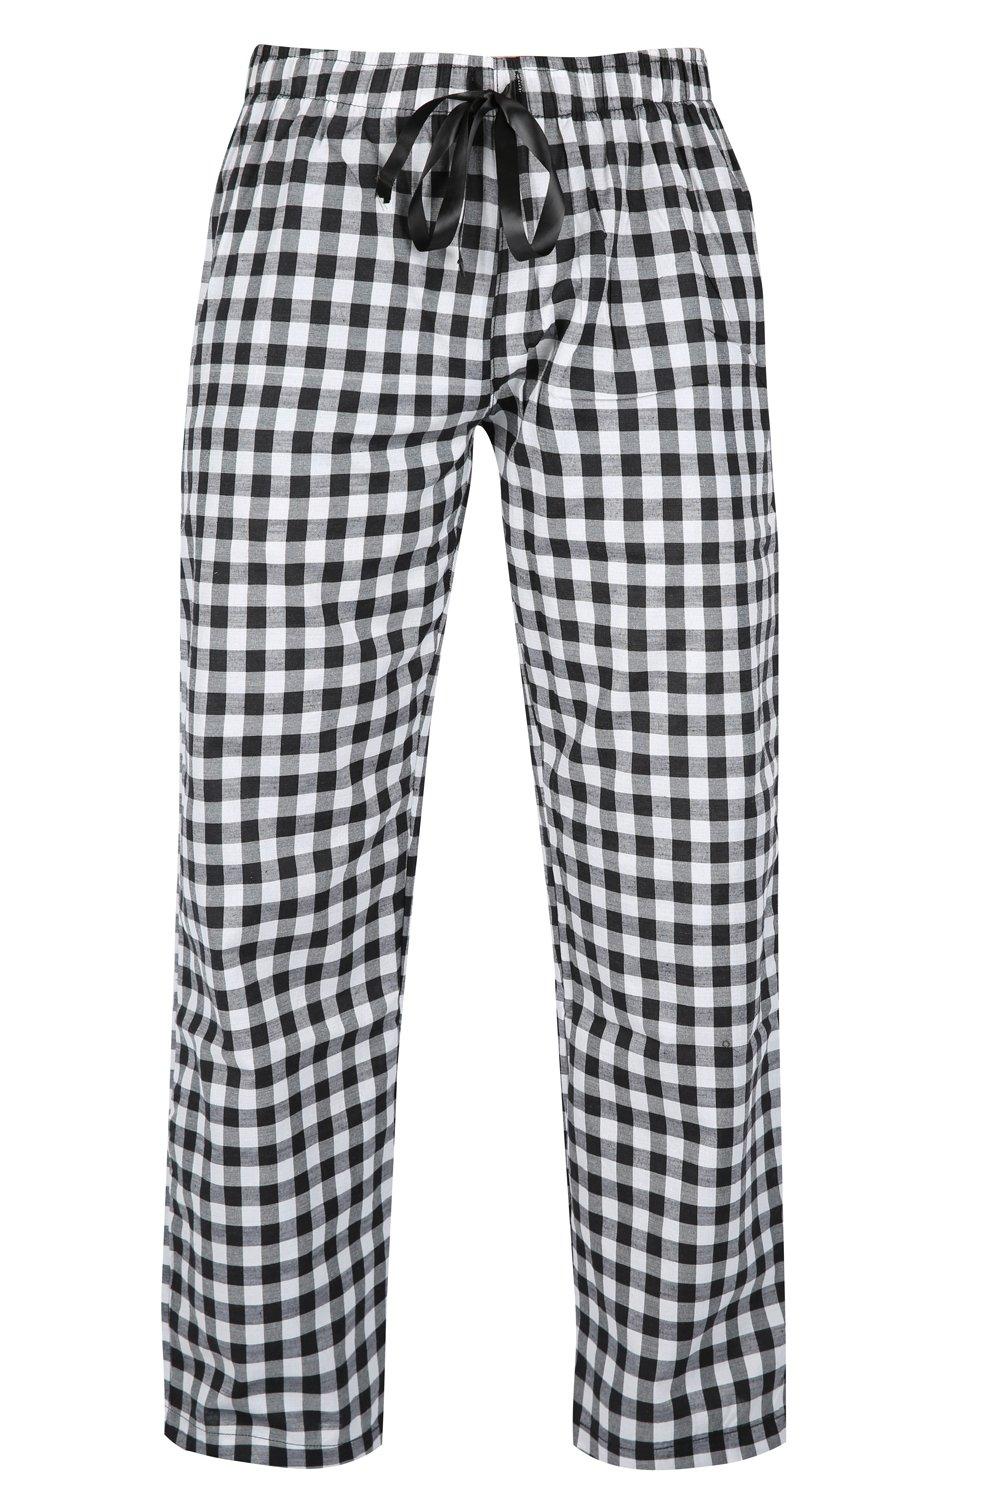 FASHION INSTYLE Women's Ladies Woven Check Pyjama Bottoms Perfect For Loungewear